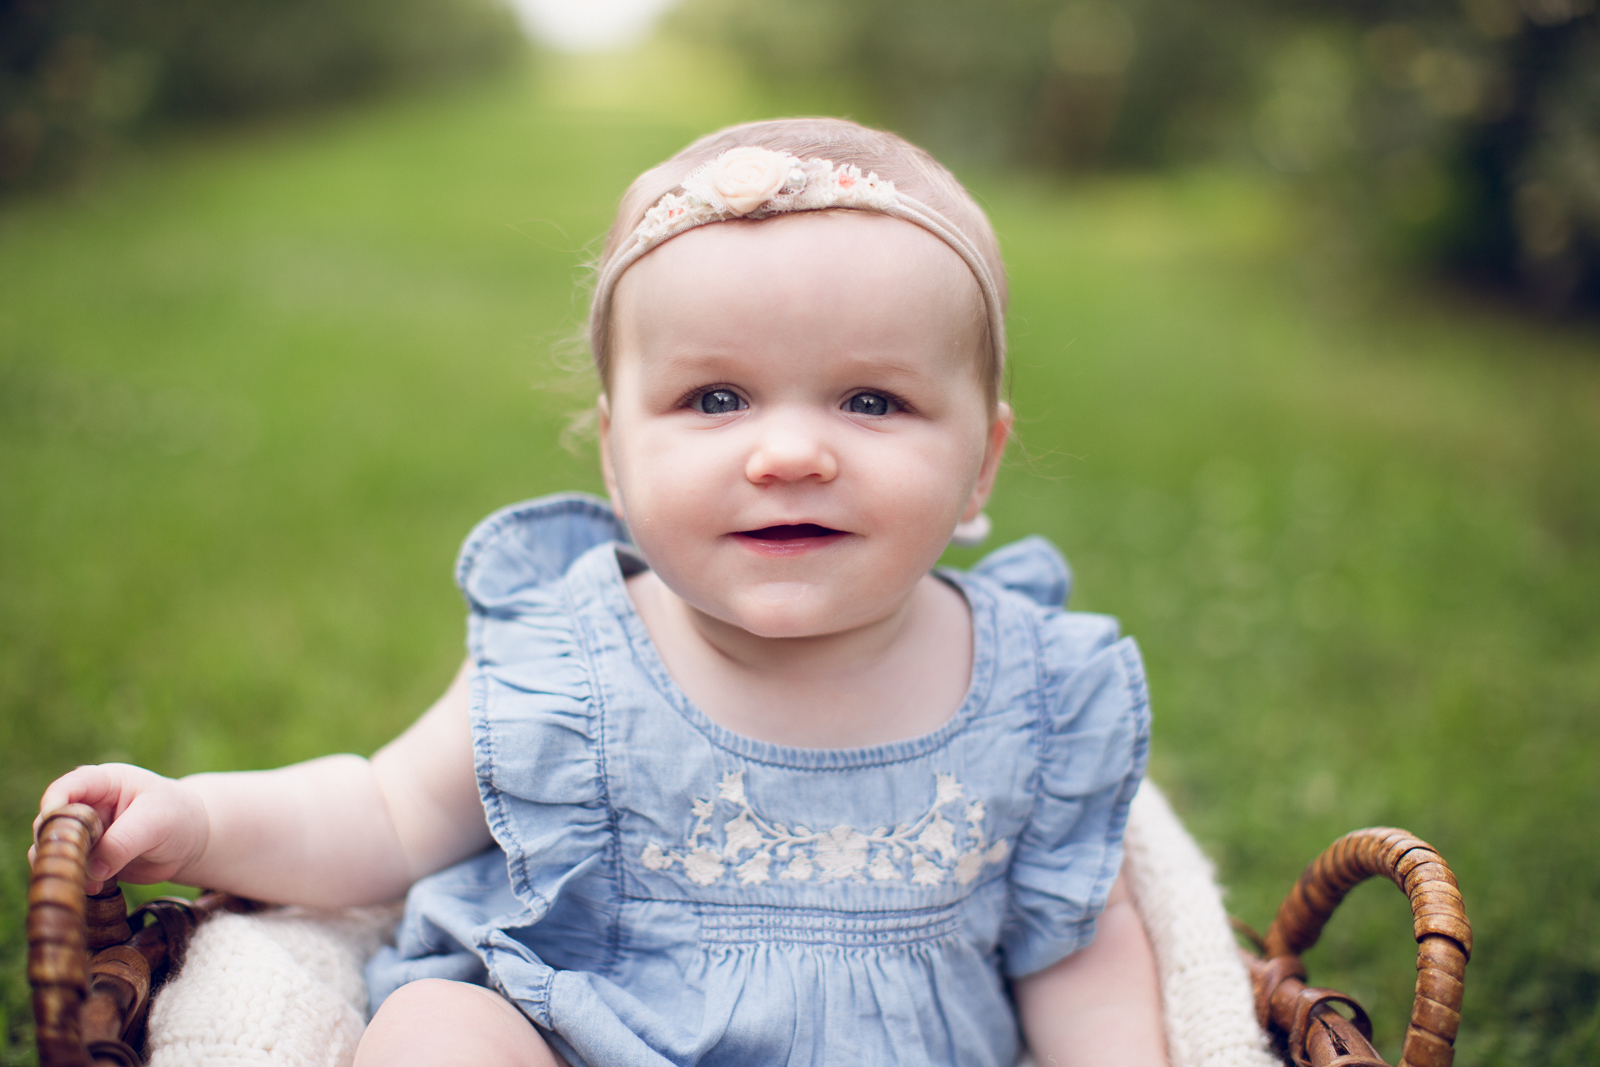 Hattie 6 month photographer lafayette indiana milestone photographer-19.jpg